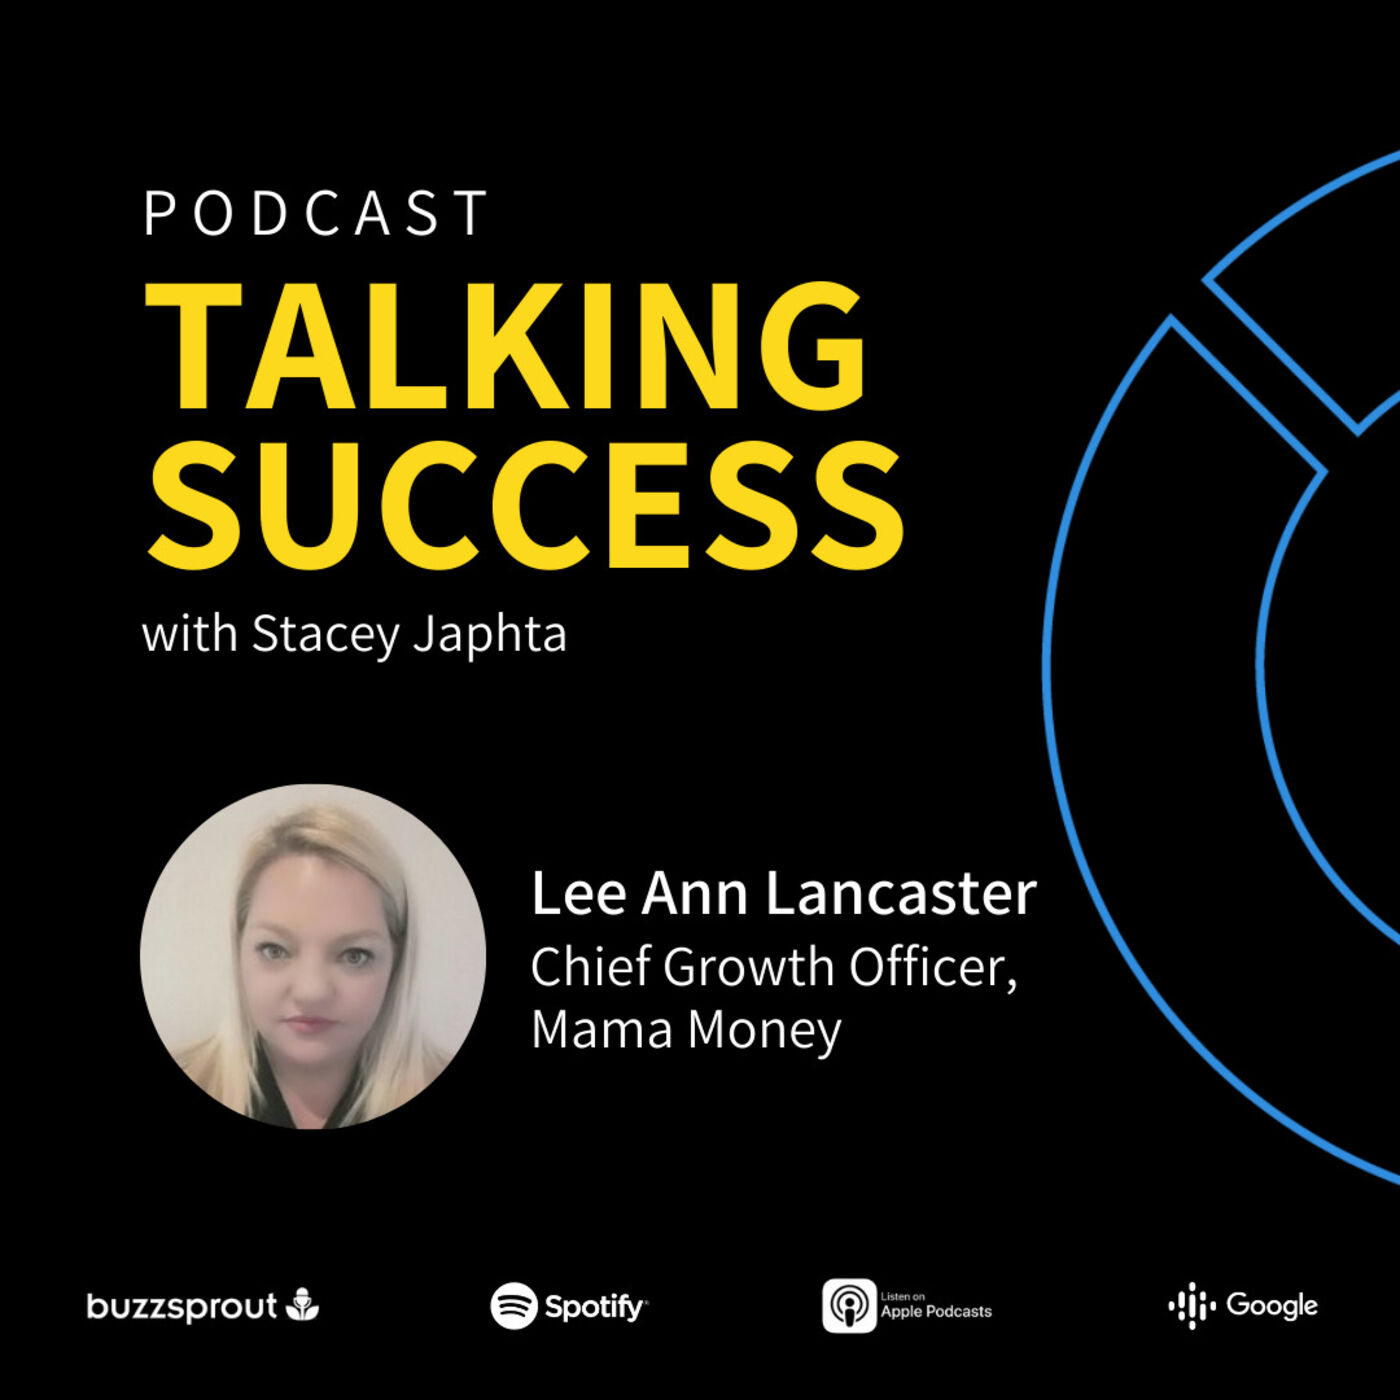 Lee Ann Lancaster, Chief Growth Officer at Mama Money - All things FinTech, how to scale your business, & how to navigate the world when the cards are not stacked in your favor